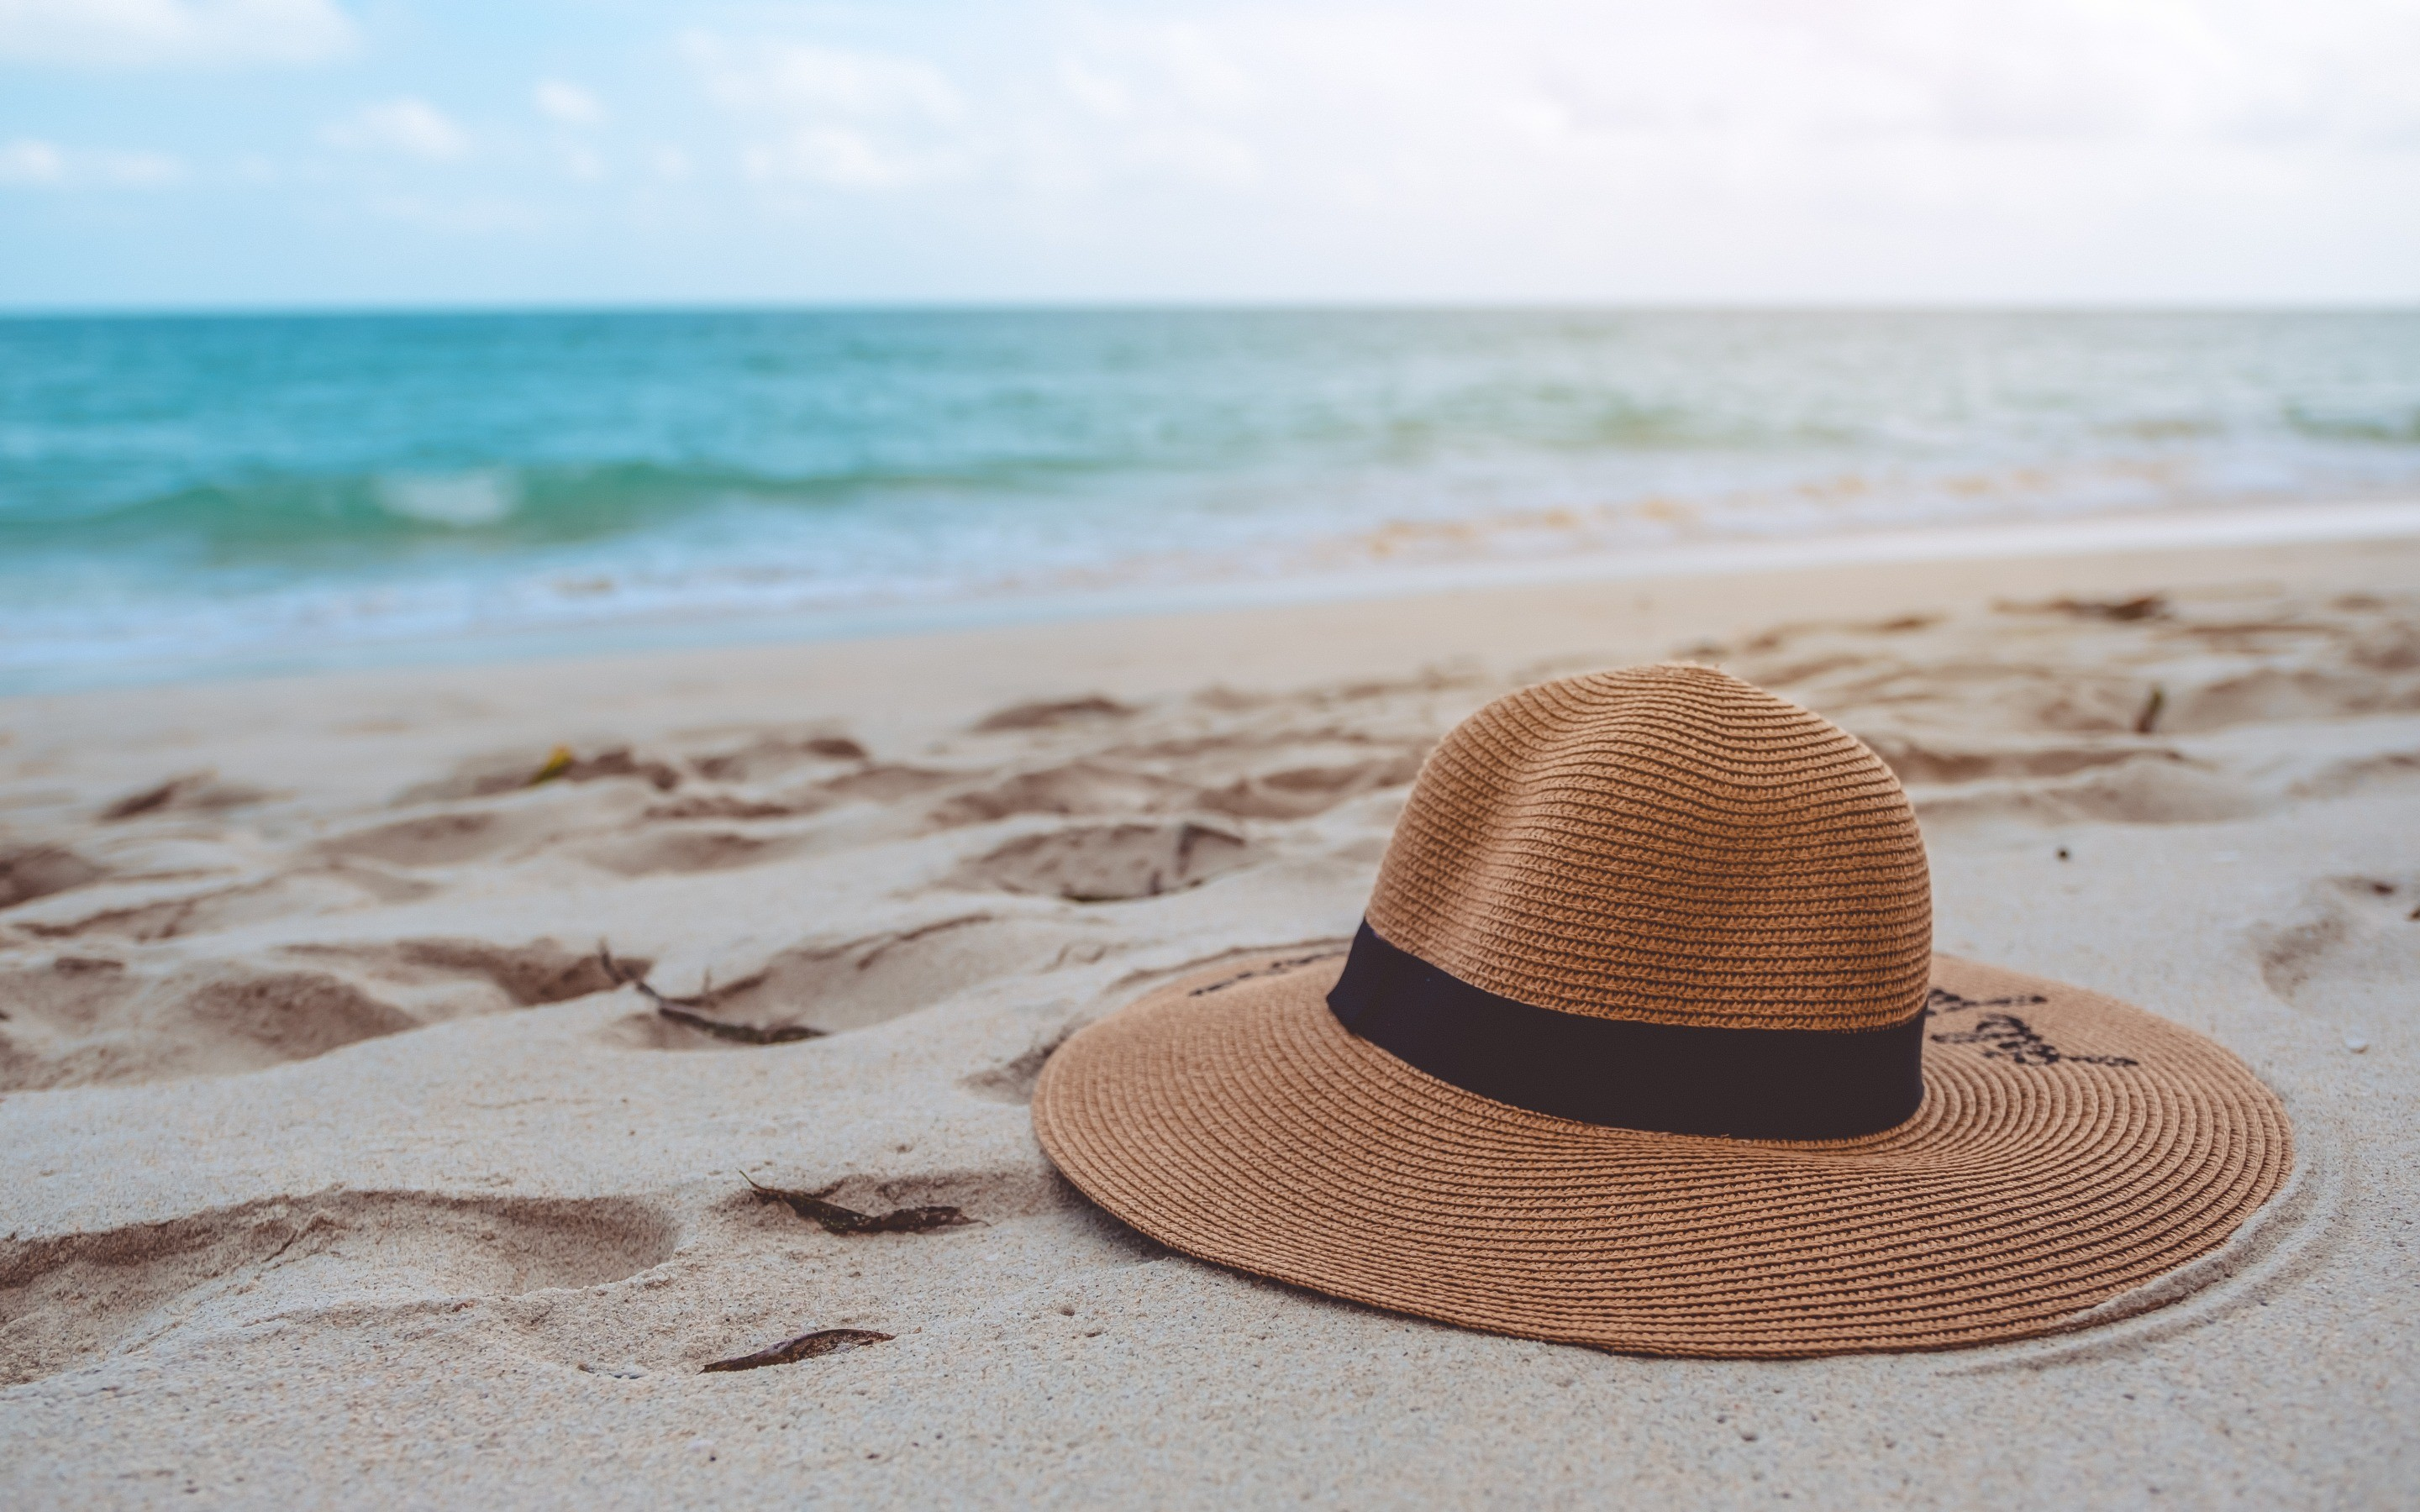 Res: 2880x1800, summer hat, beach, sand, sea, travel concepts, hat in the sand